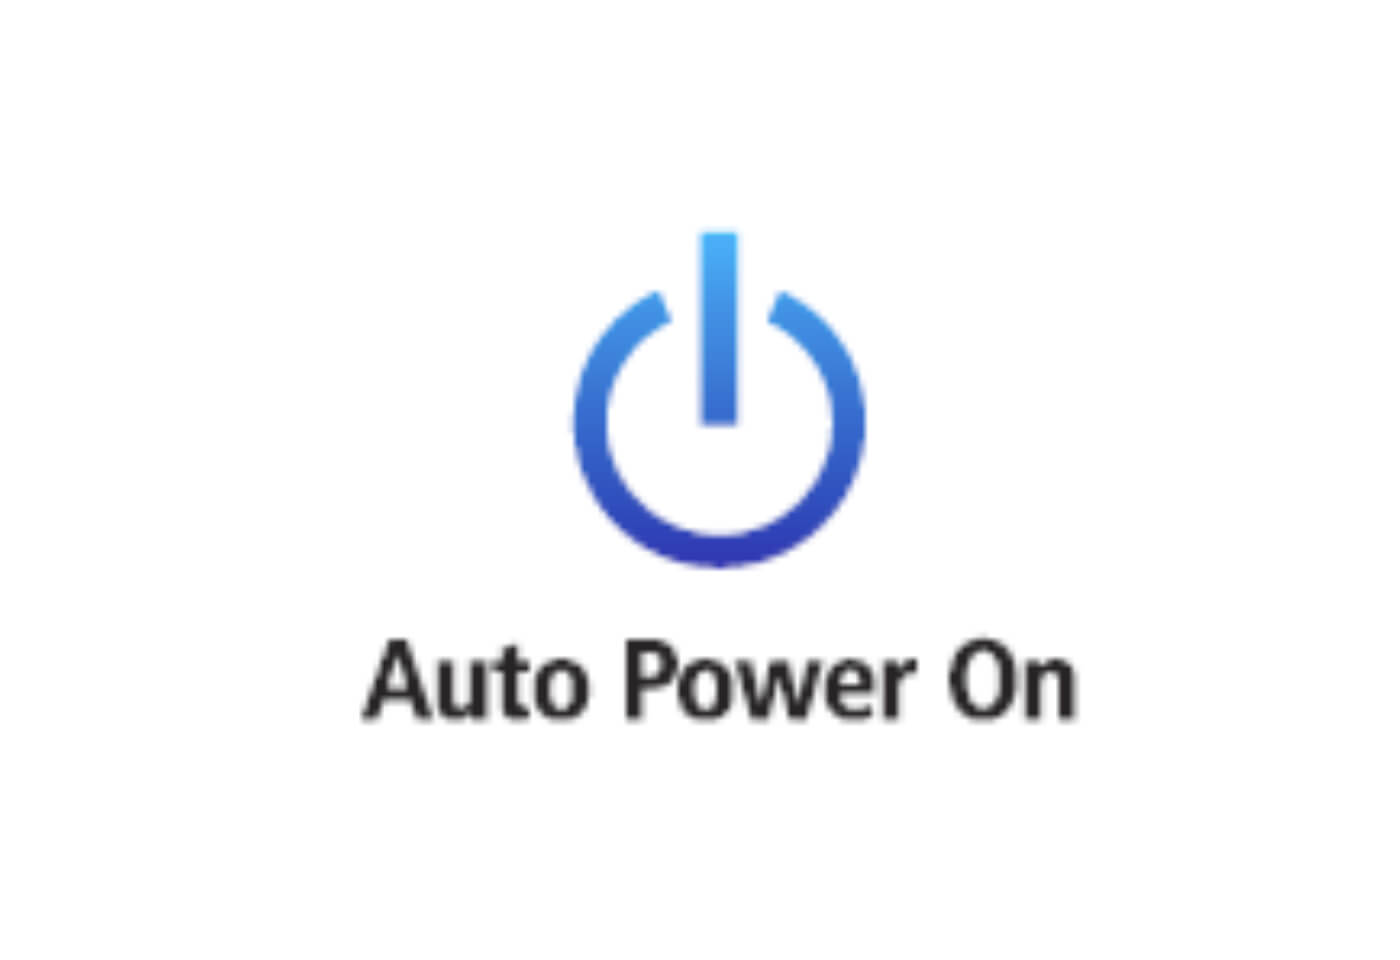 Auto Power Off icon